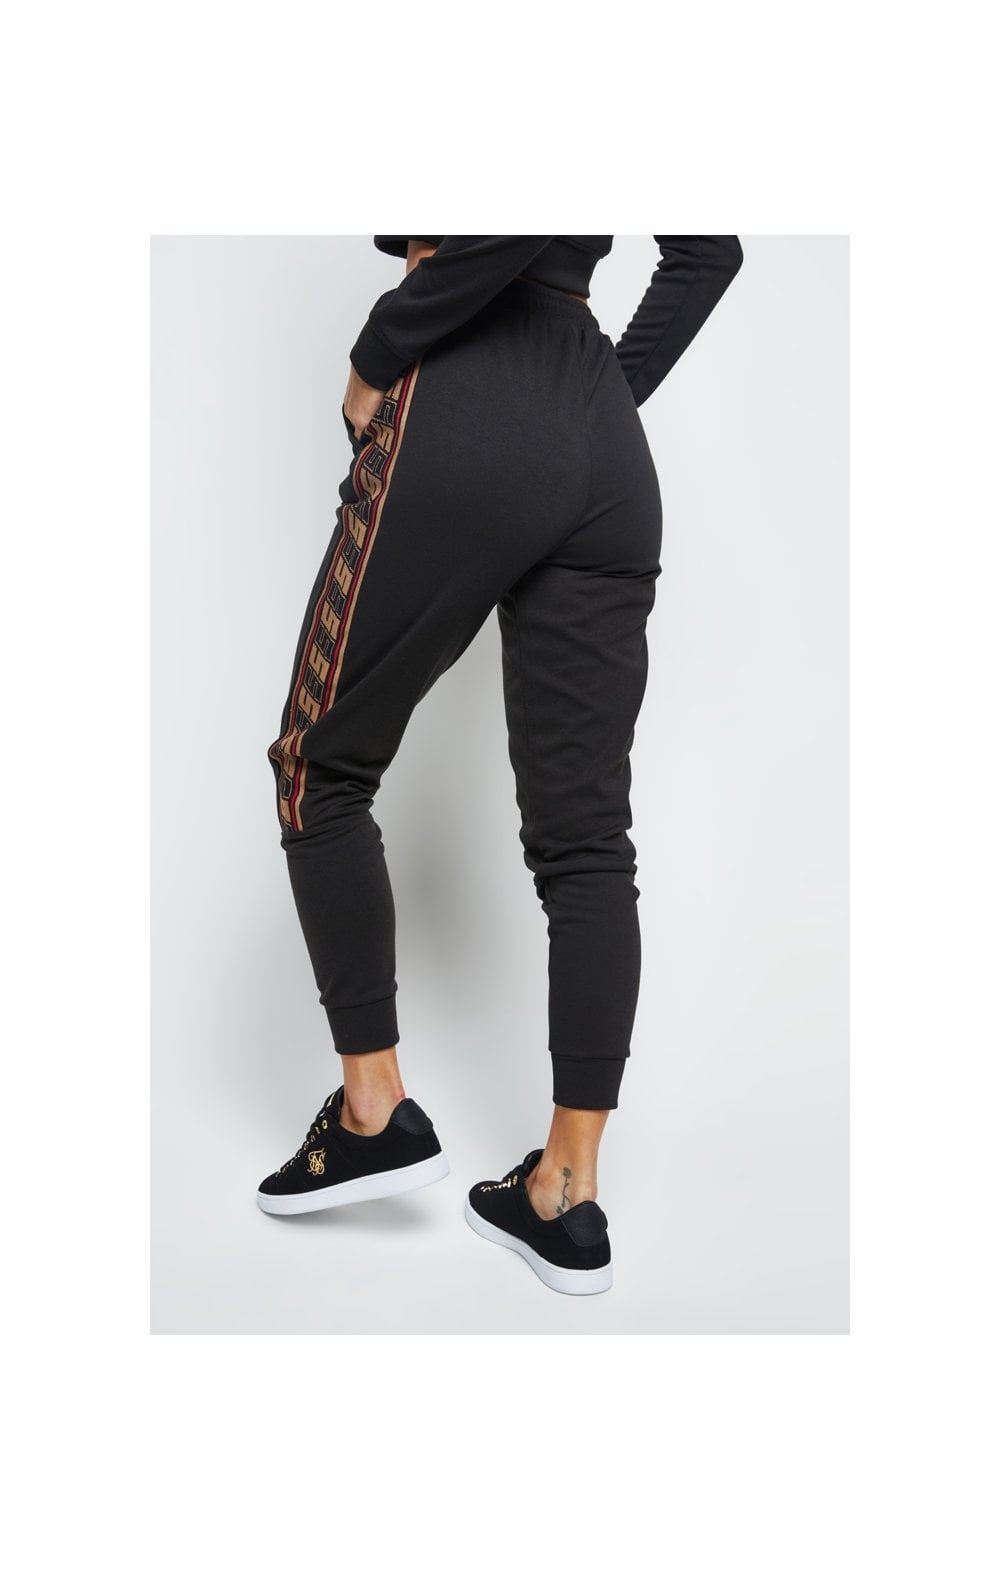 SikSilk Distinction Track Pants - Black (3)